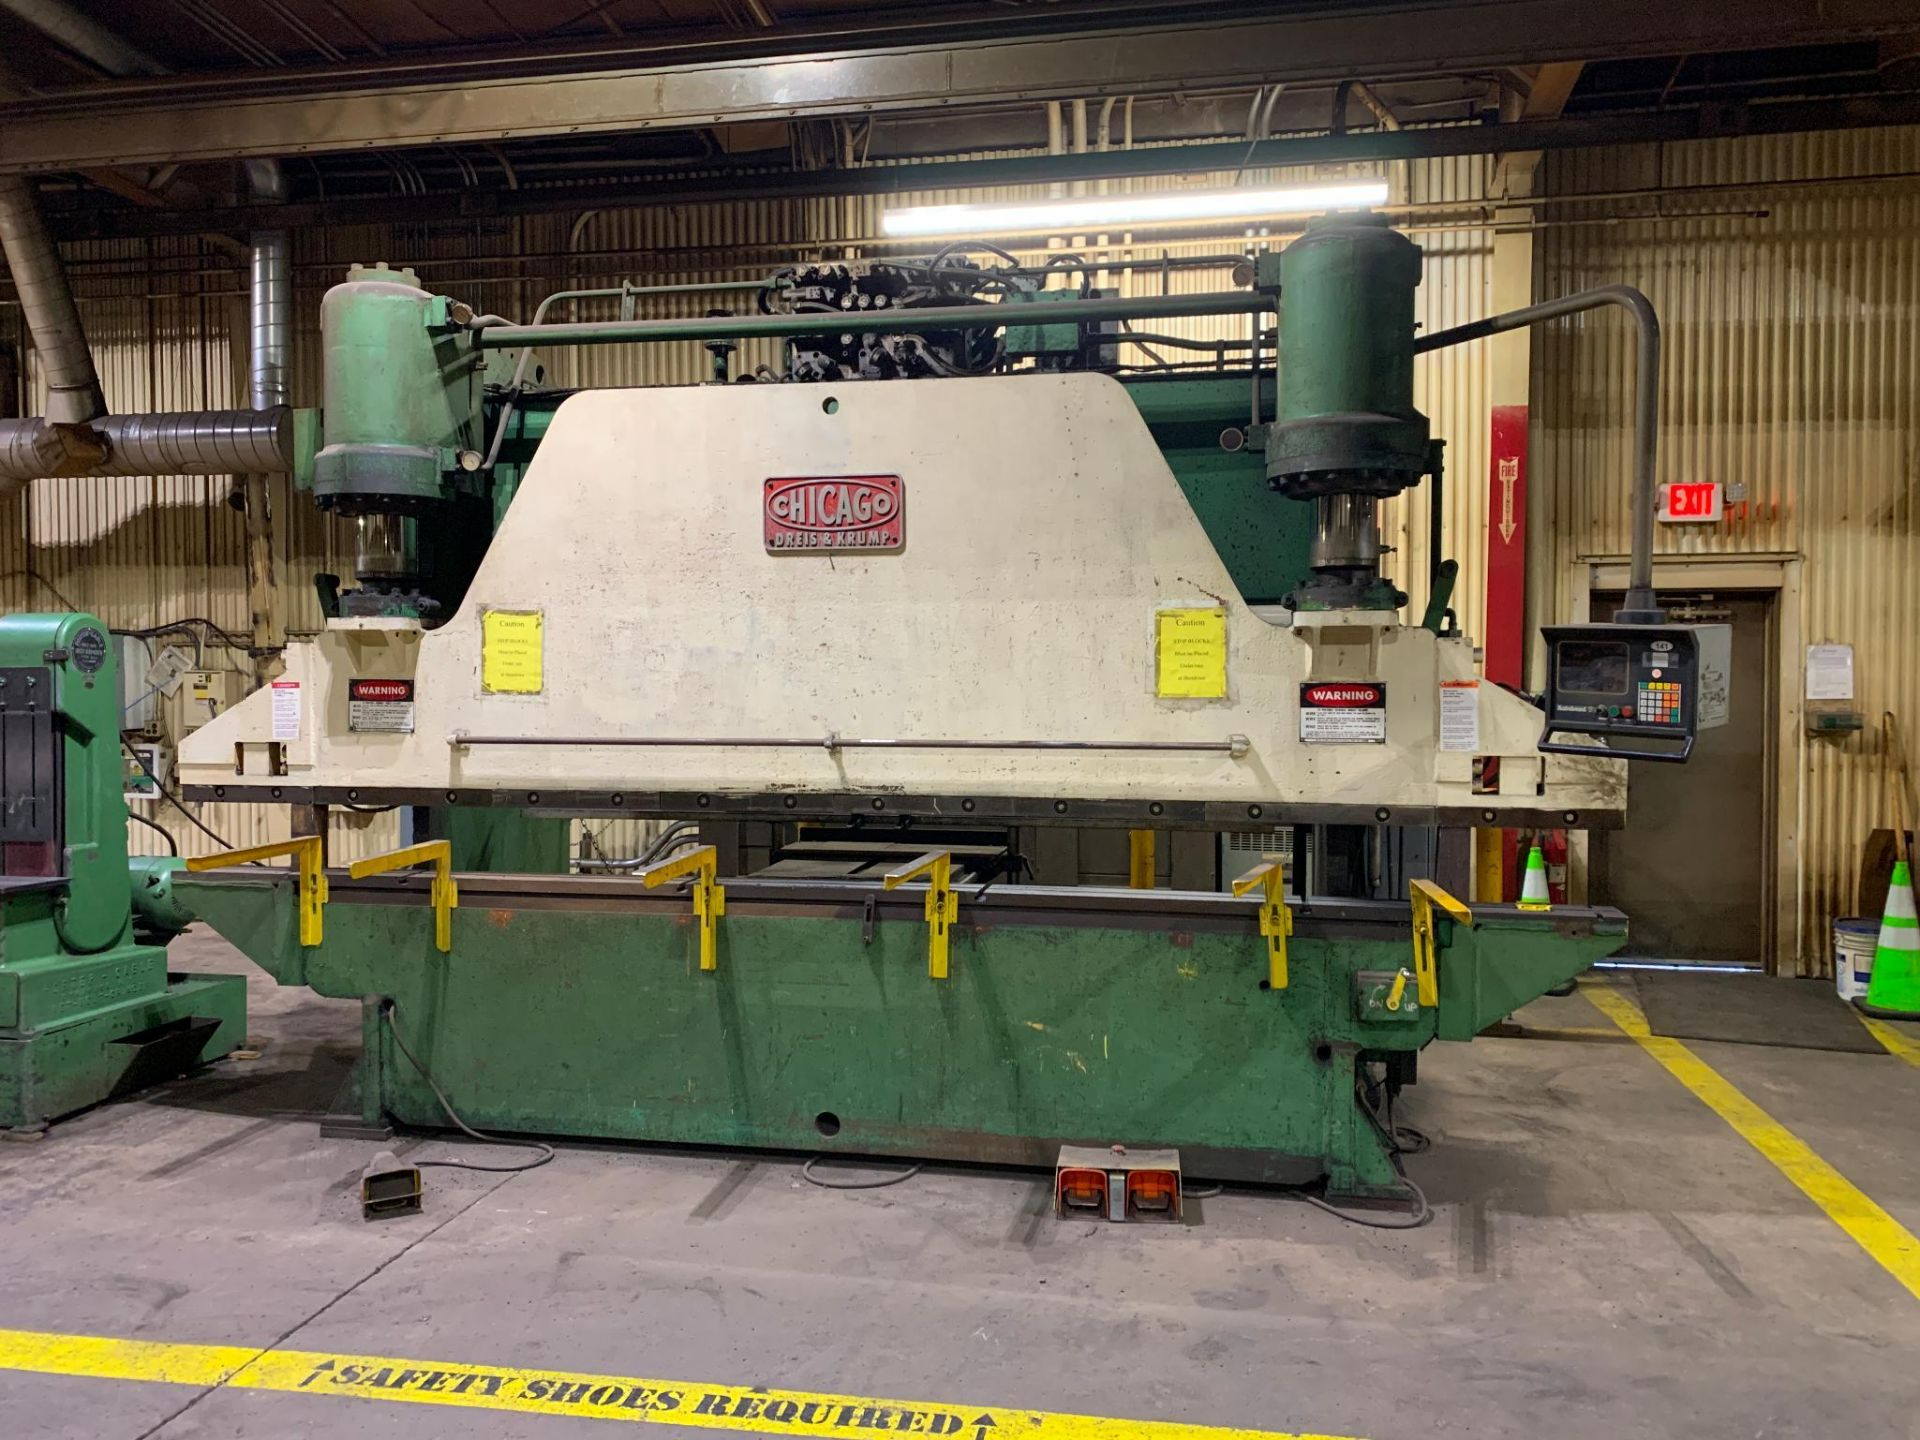 Chicago Dries & Krump Hydraulic Press Brake With: Hurco Autobend 7 Backgauge Control 200 Ton x 16' M - Image 2 of 41